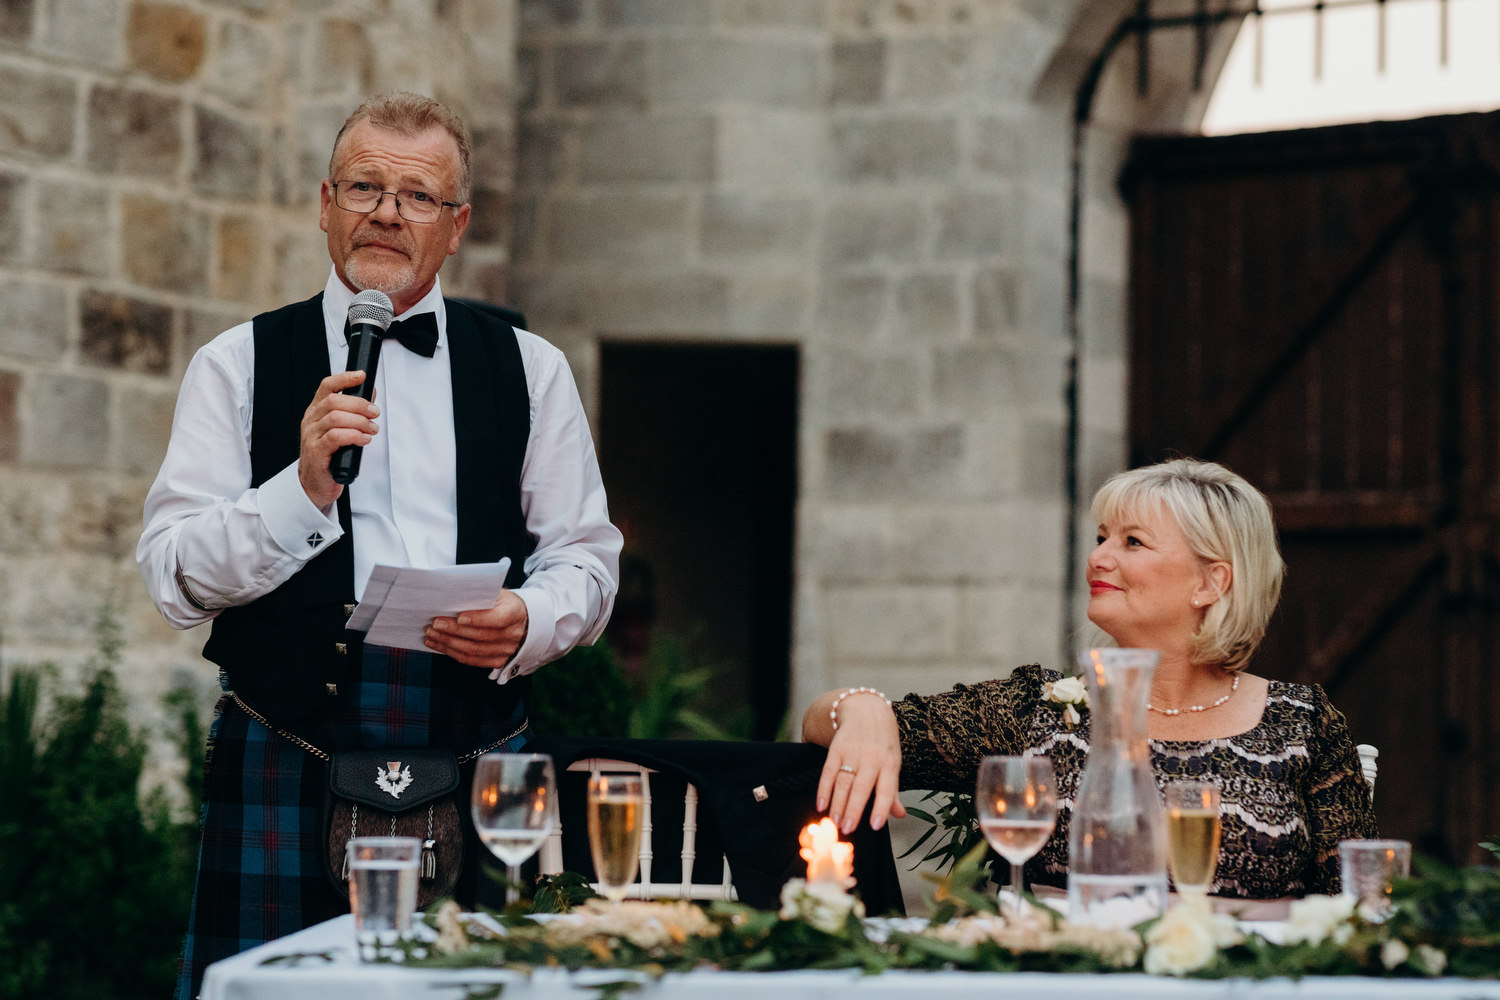 Father of bride speech with wife looking at him